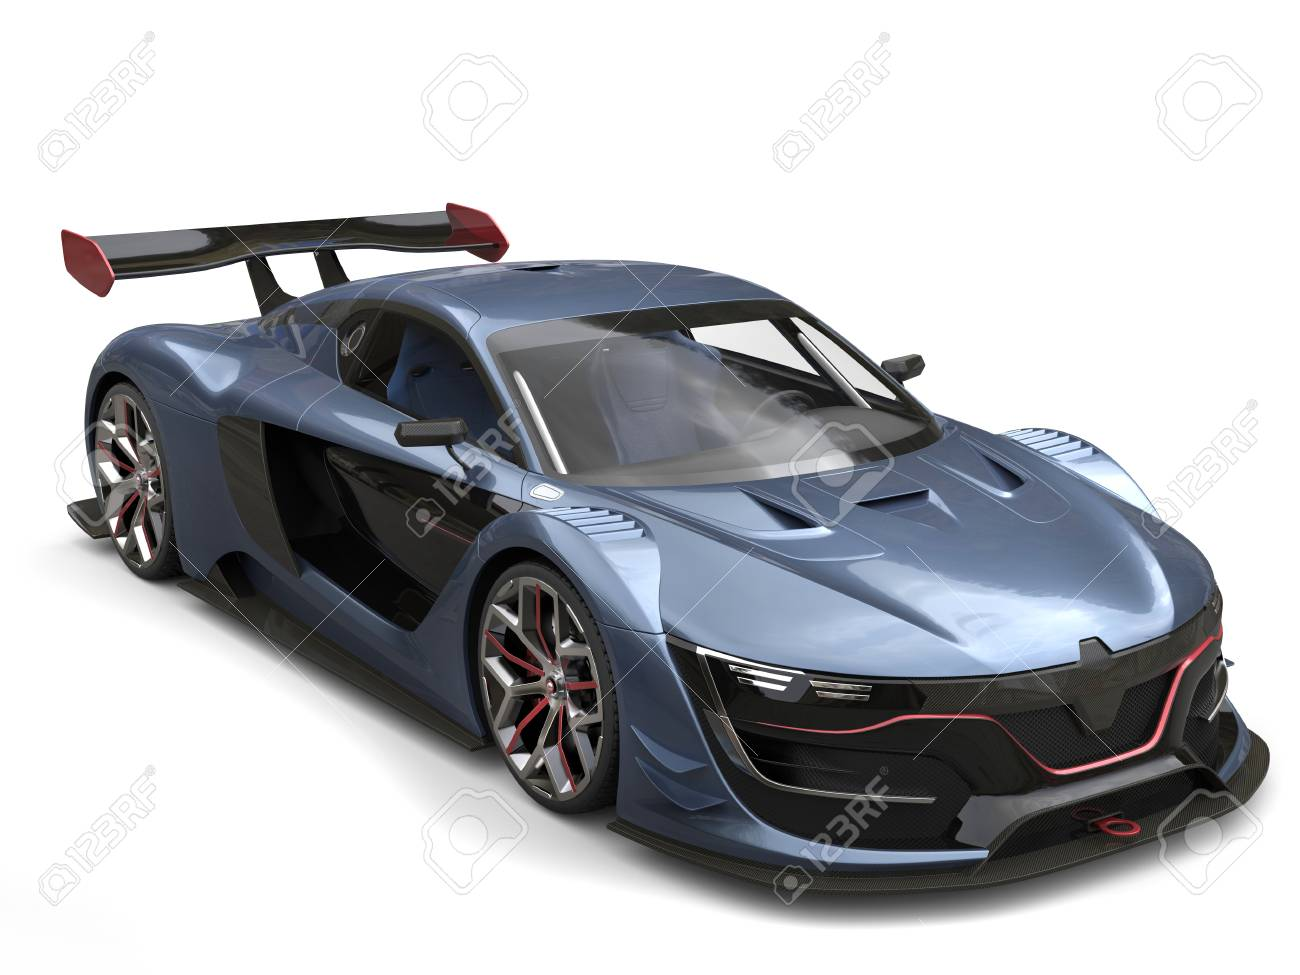 Superb Super Sports Car Metallic Gray Blue Color With Red Details